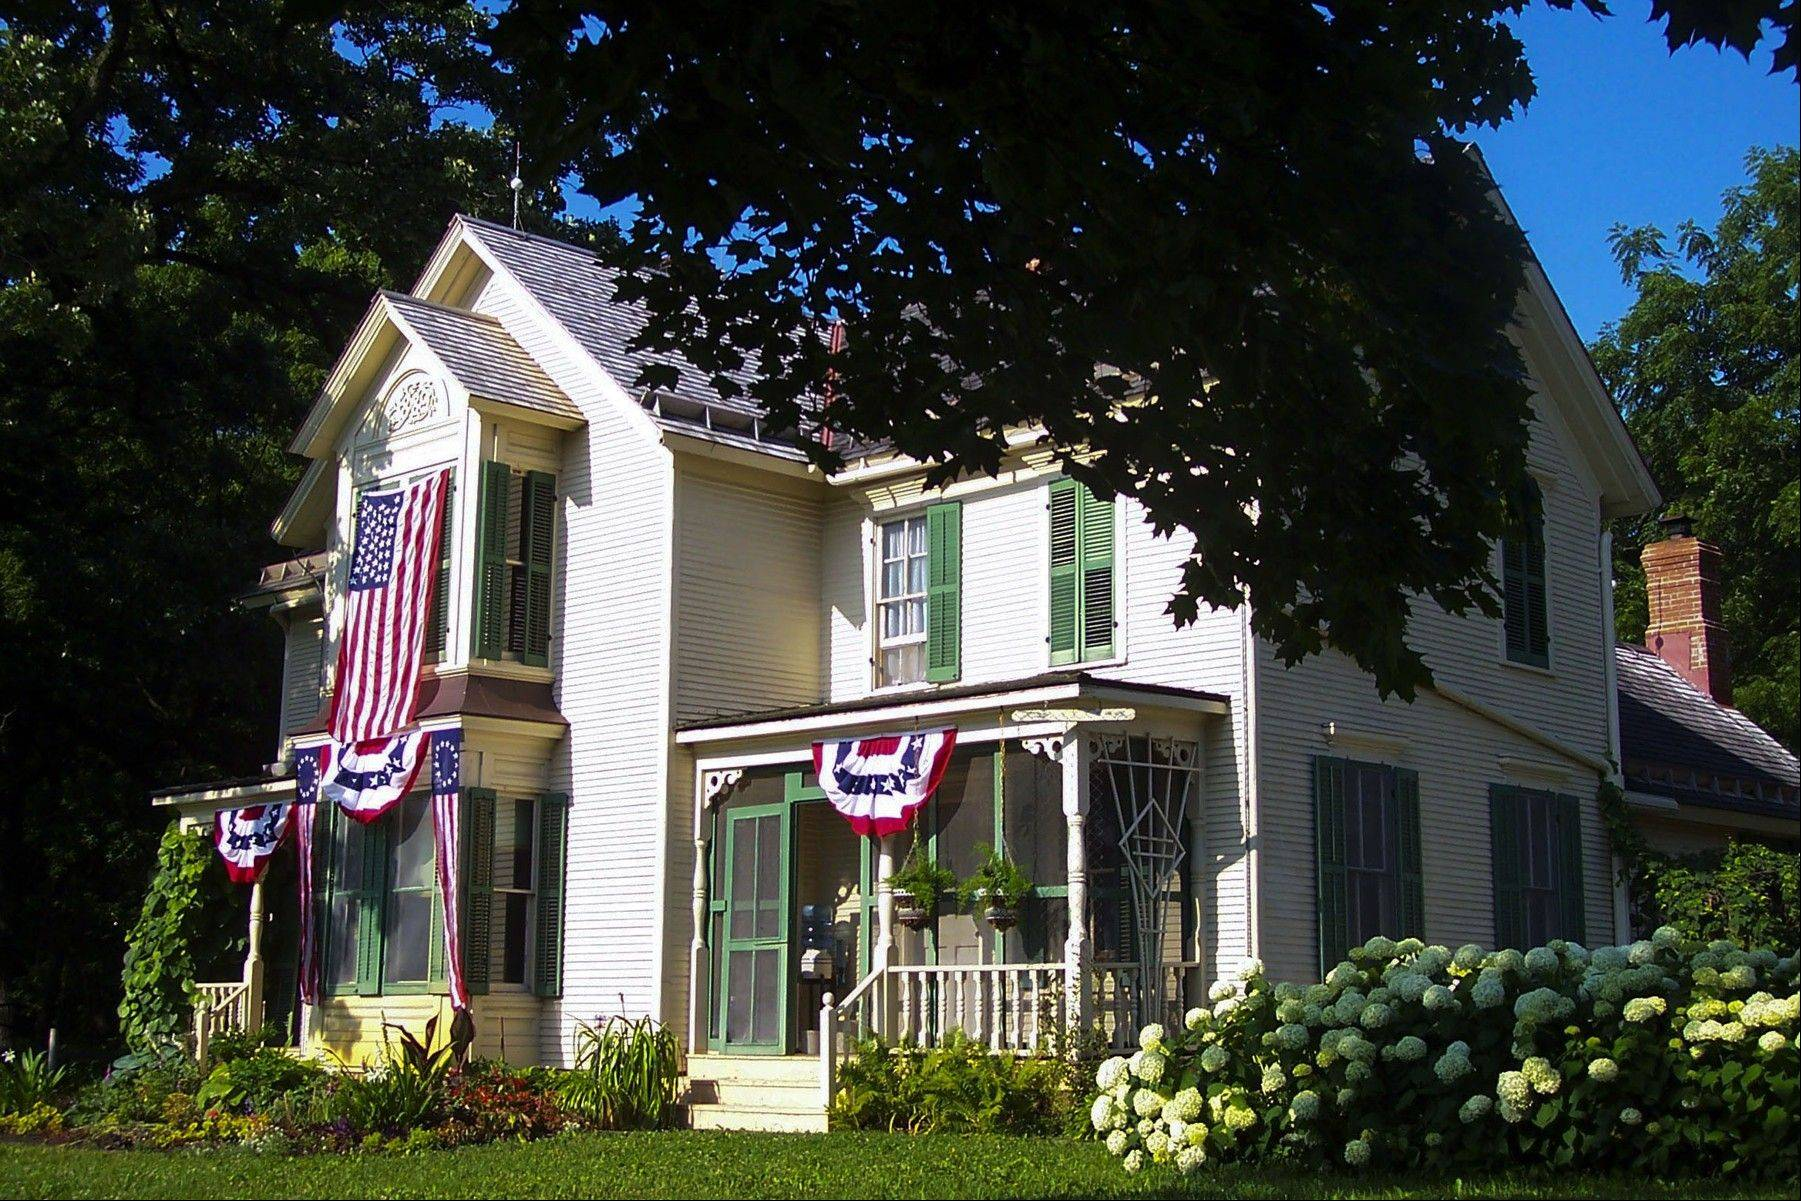 Visitors to Kline Creek Farm's Fourth of July Celebration will be able to tour the property's 1890s farmhouse, chicken coop and other historic facilities. Tours will begin each hour on the hour.